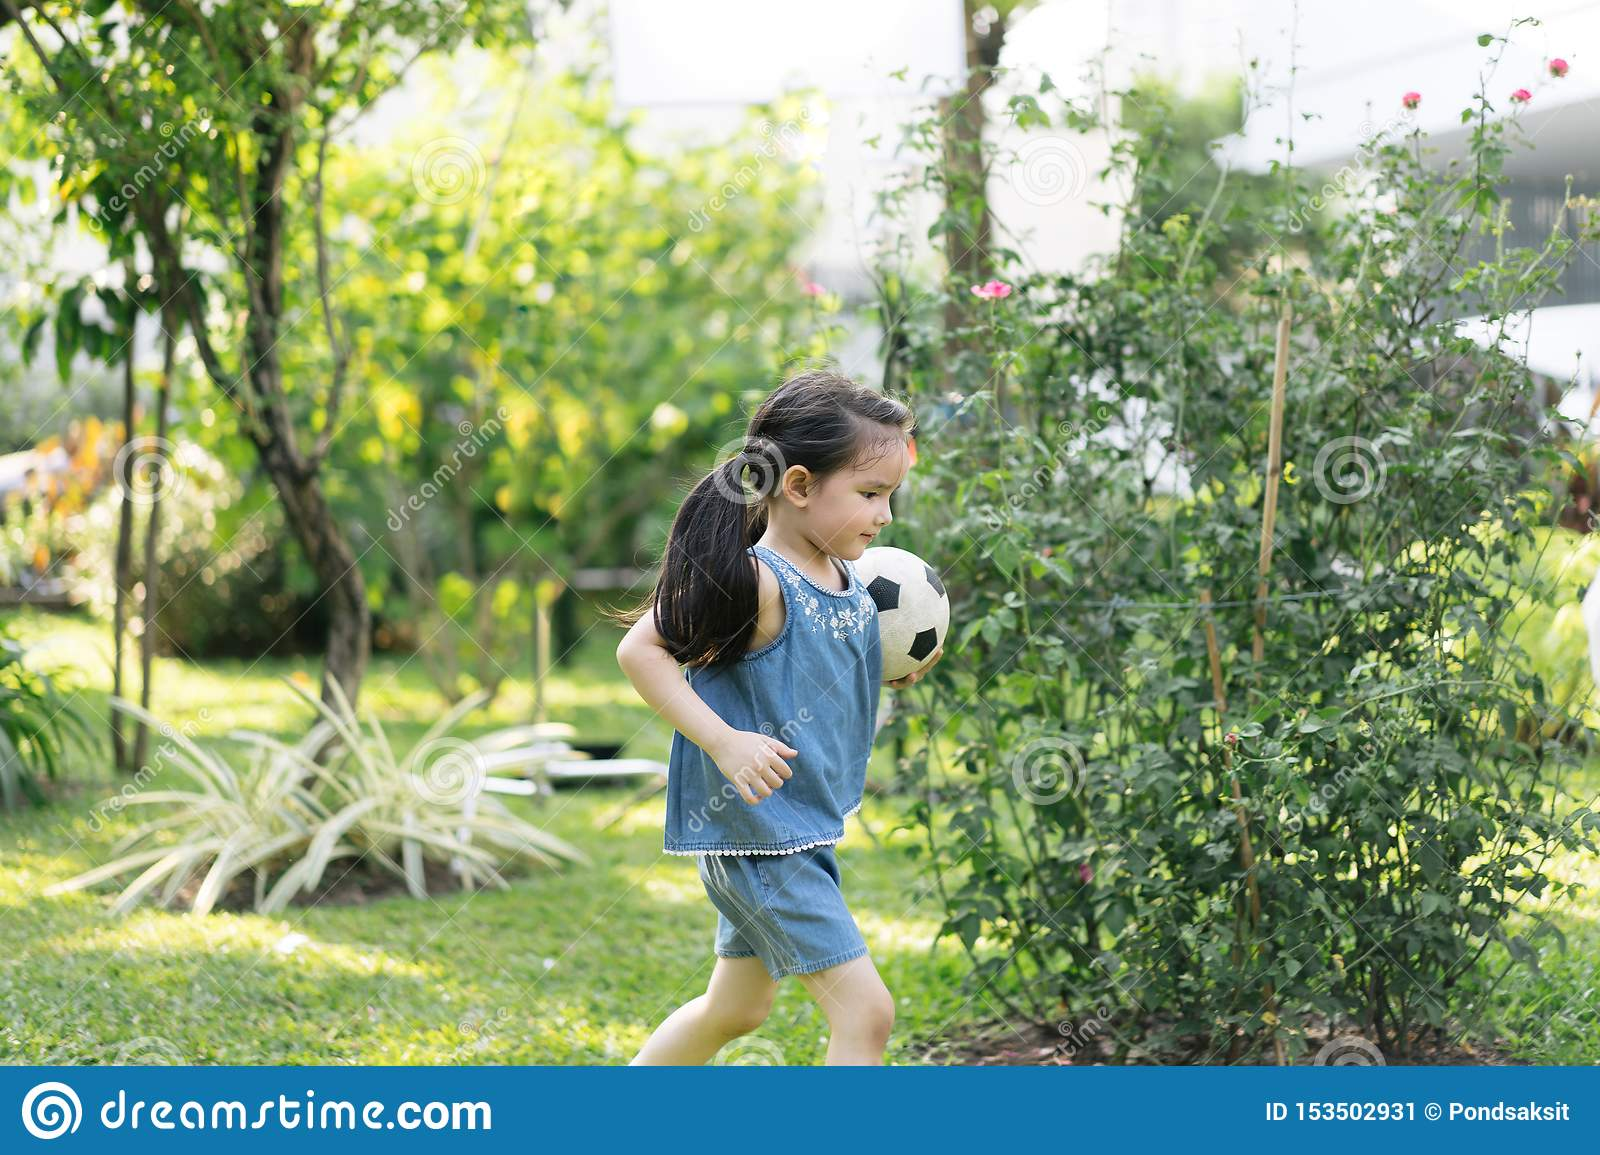 Little girl in nature park . cute kid holding playing football.